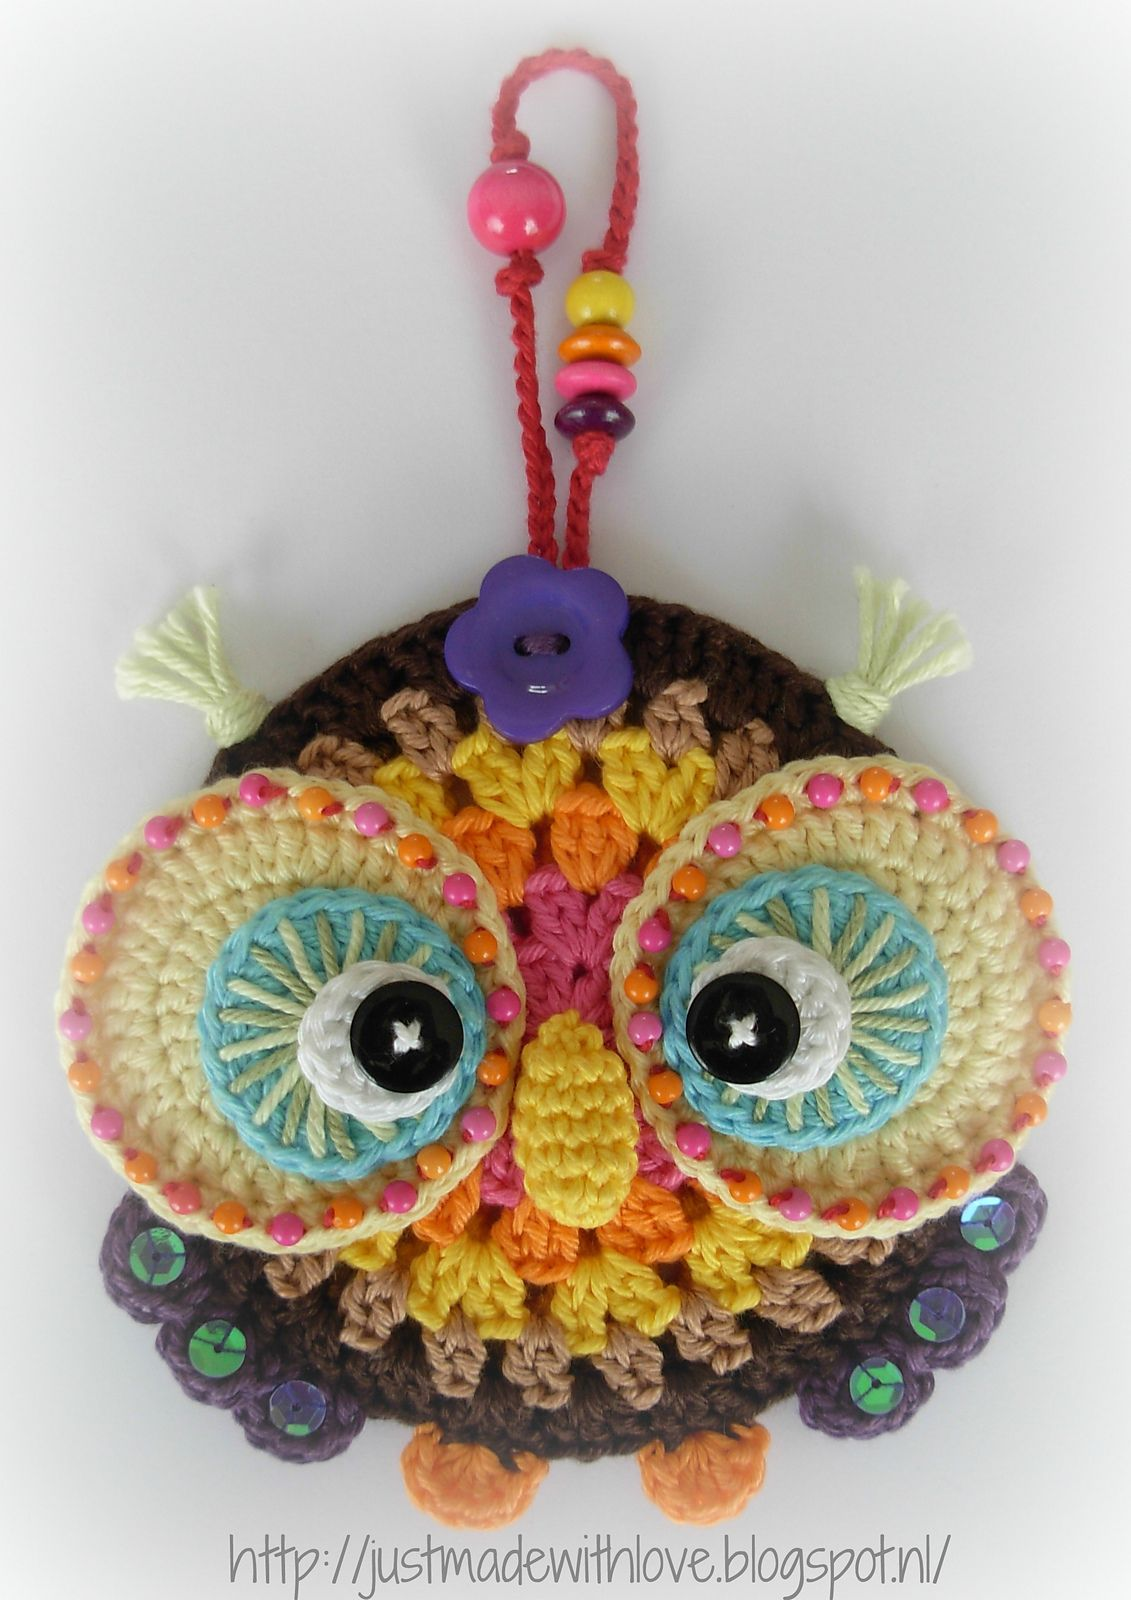 Ravelry: Antoinette06\'s Autumn Owl Ornament | Crochet | Pinterest ...